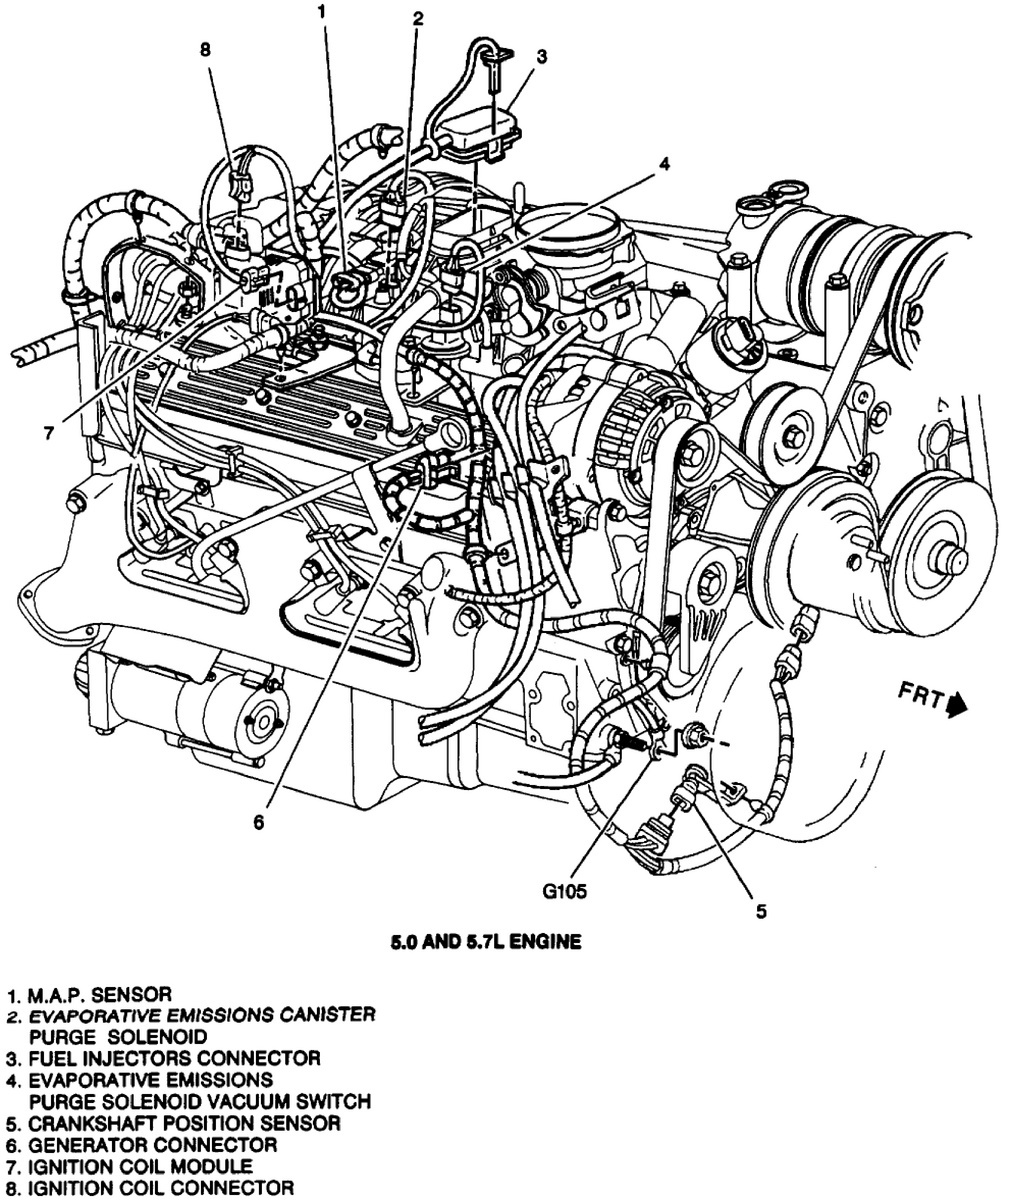 96 Chevy Lumina Engine Diagram Wiring Library 1996 Ford F 250 Fuel Pump Chevrolet Corsica Questions Where Is Crankshaft Sensor On 1989 Cargurus 92 Specs